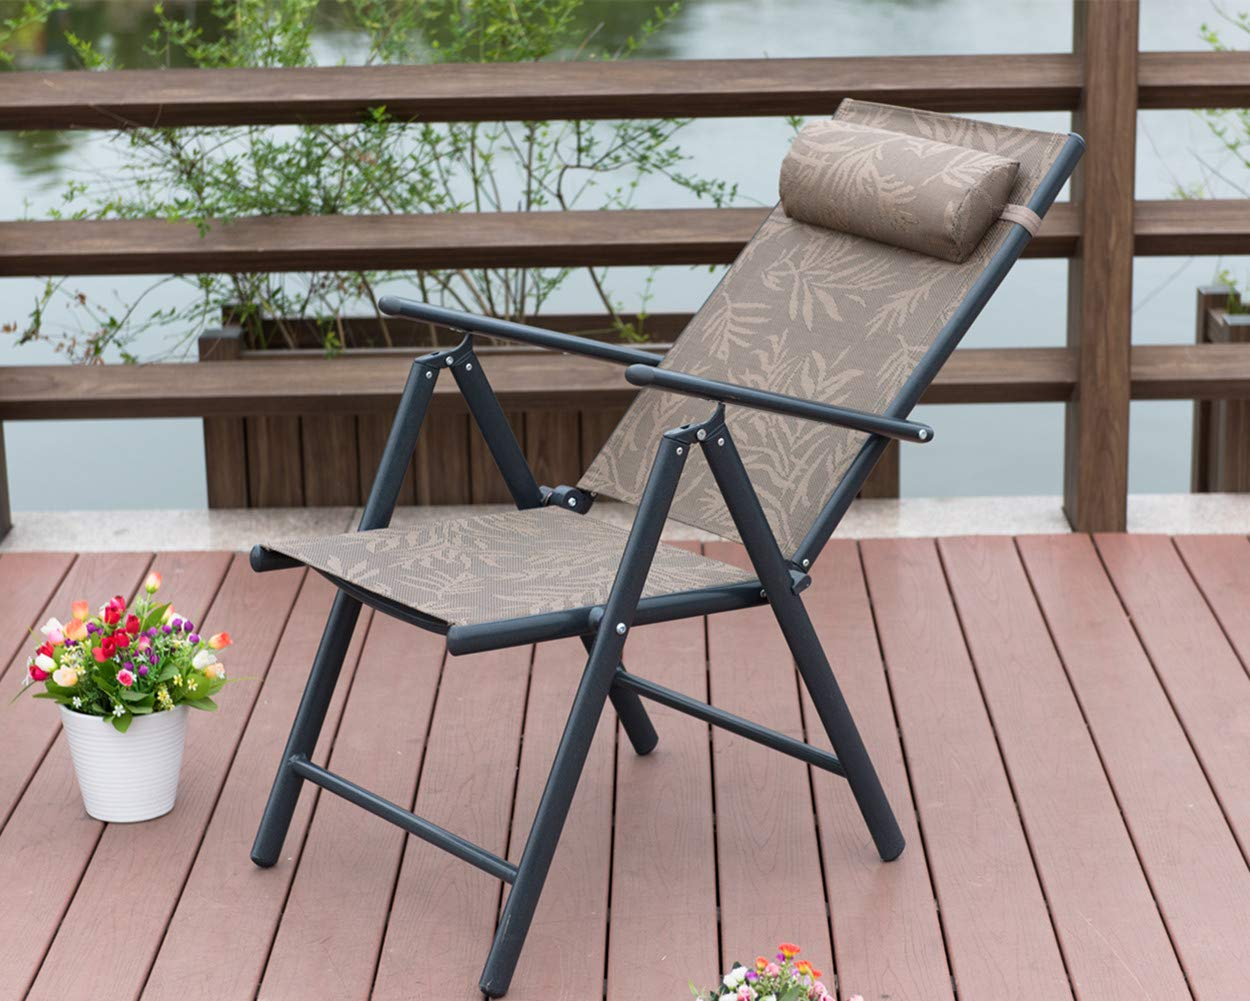 PatioPost Outdoor Adjustable Folding Recliner Aluminum Patio Sling Chairs with 7 Stalls, Set of 2 - Jacquard by PatioPost (Image #7)